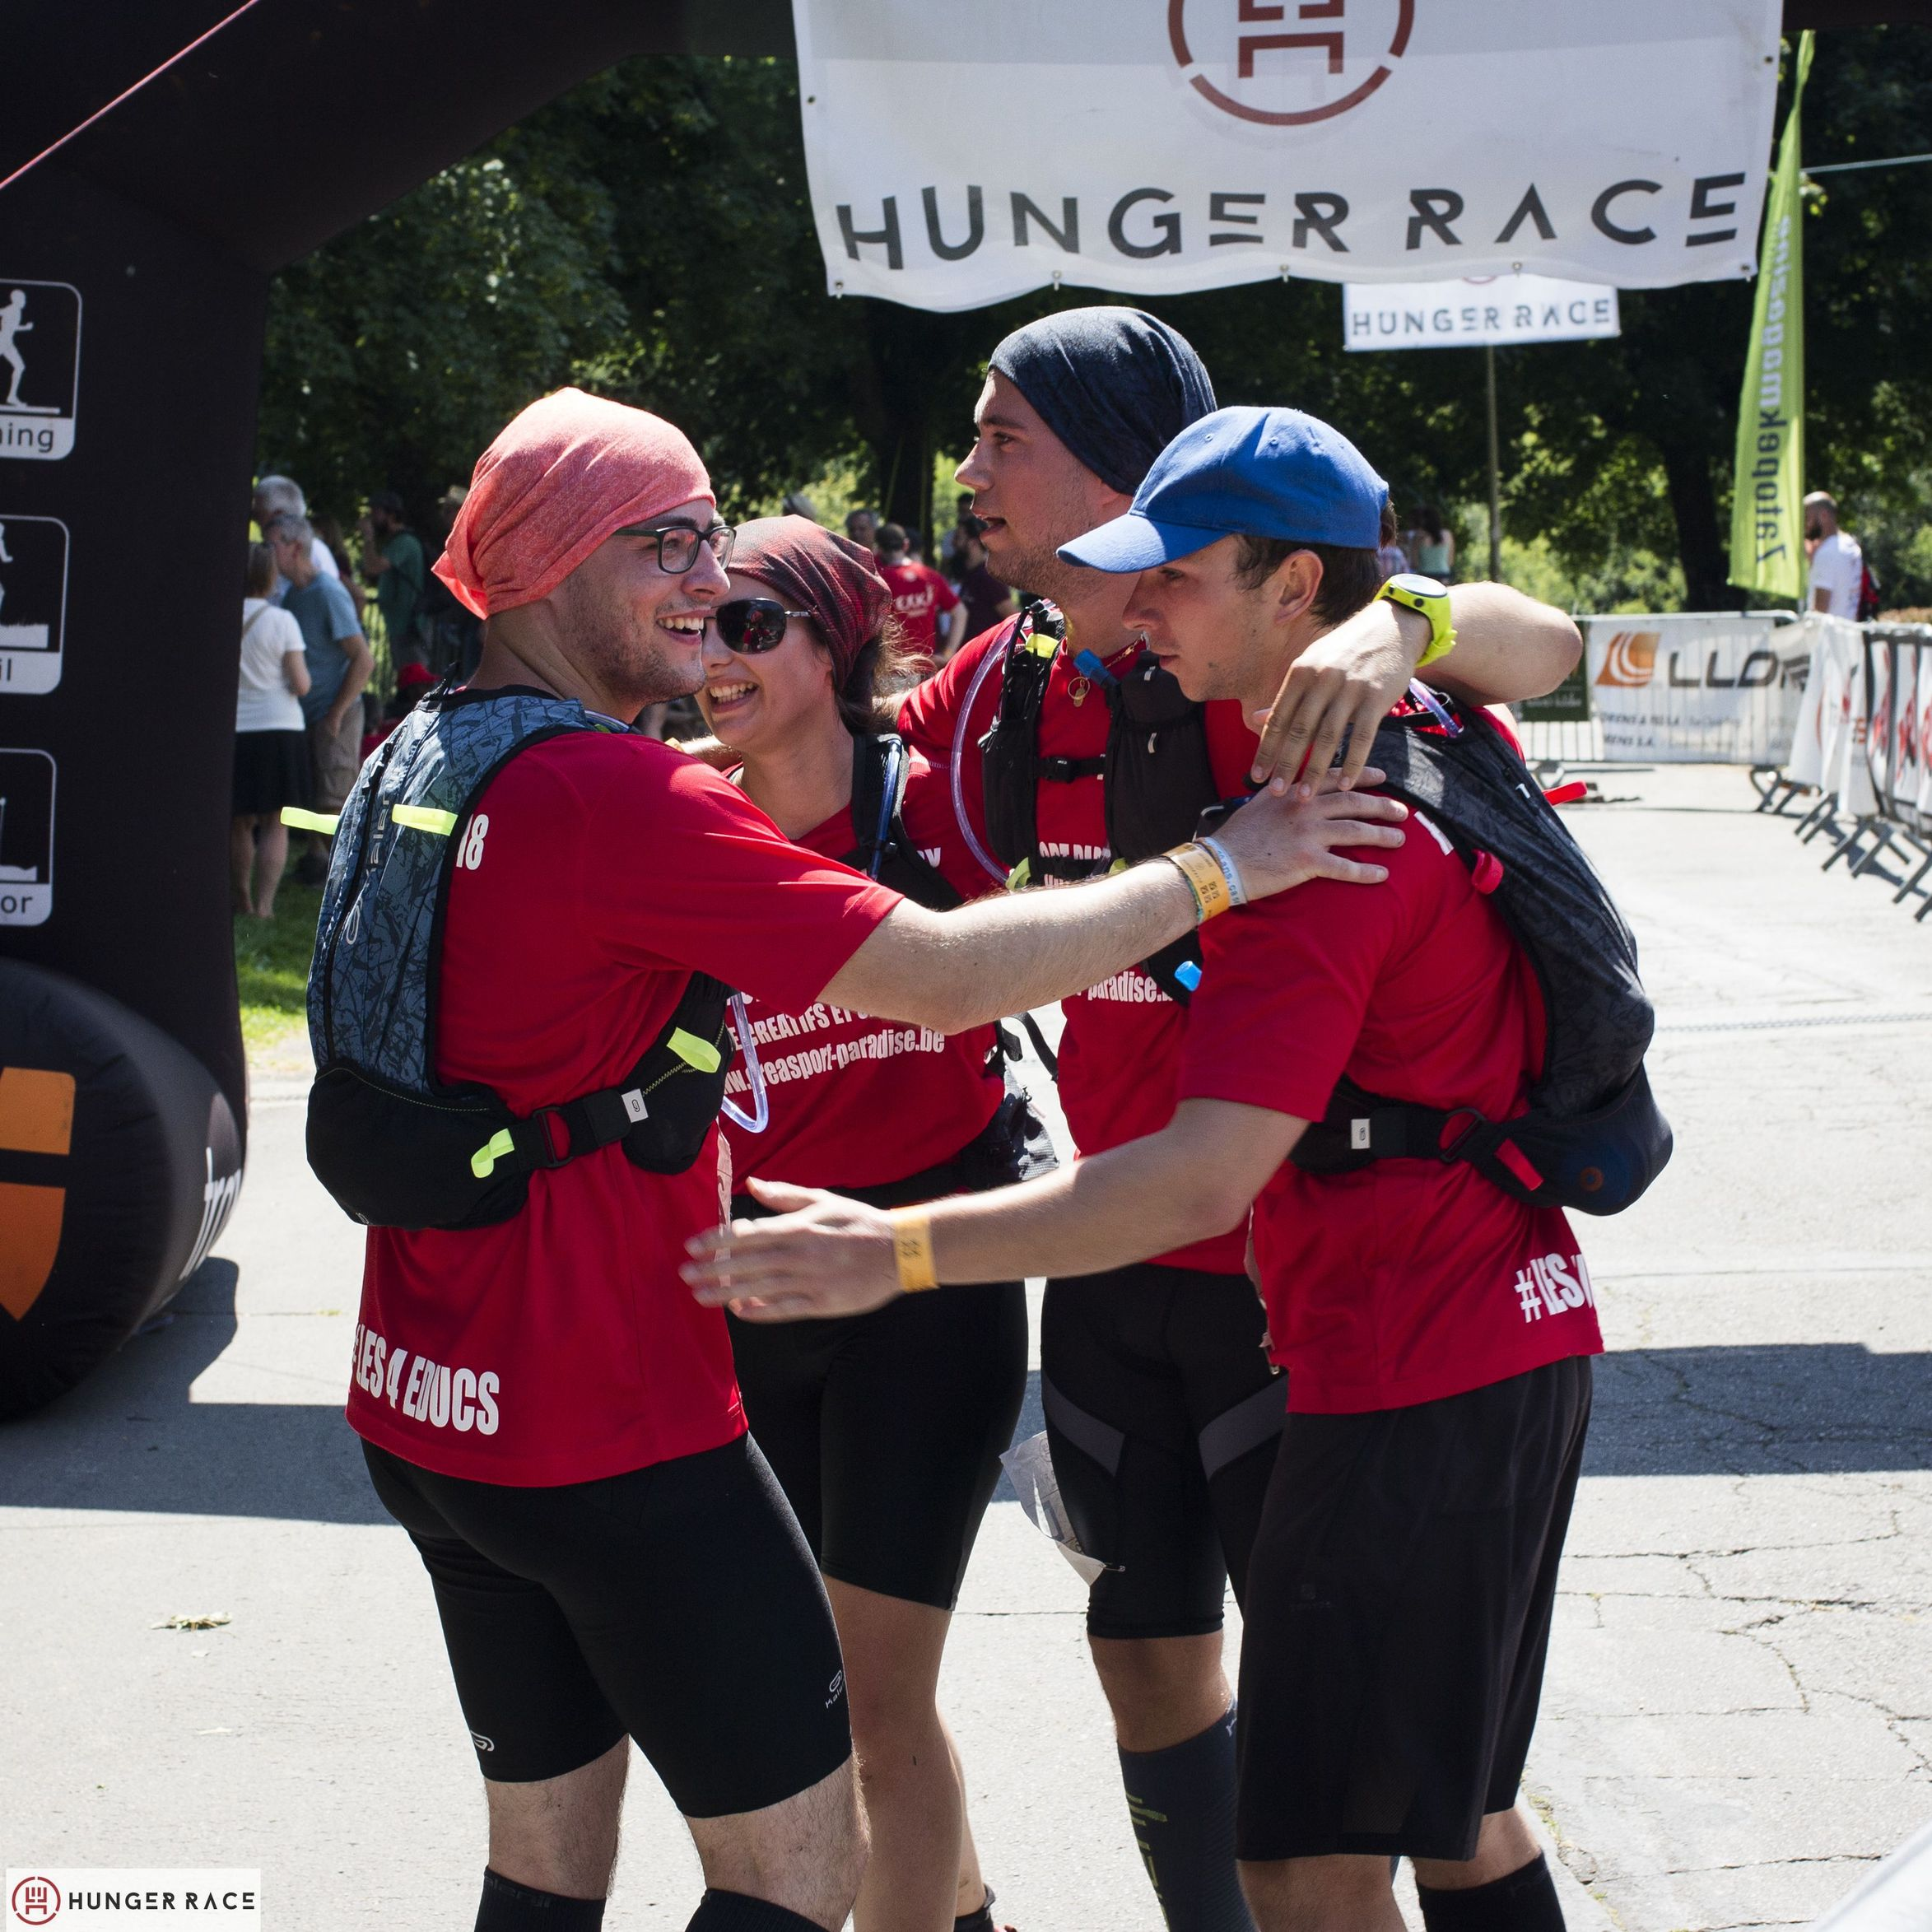 Hunger Race 2018 en images !